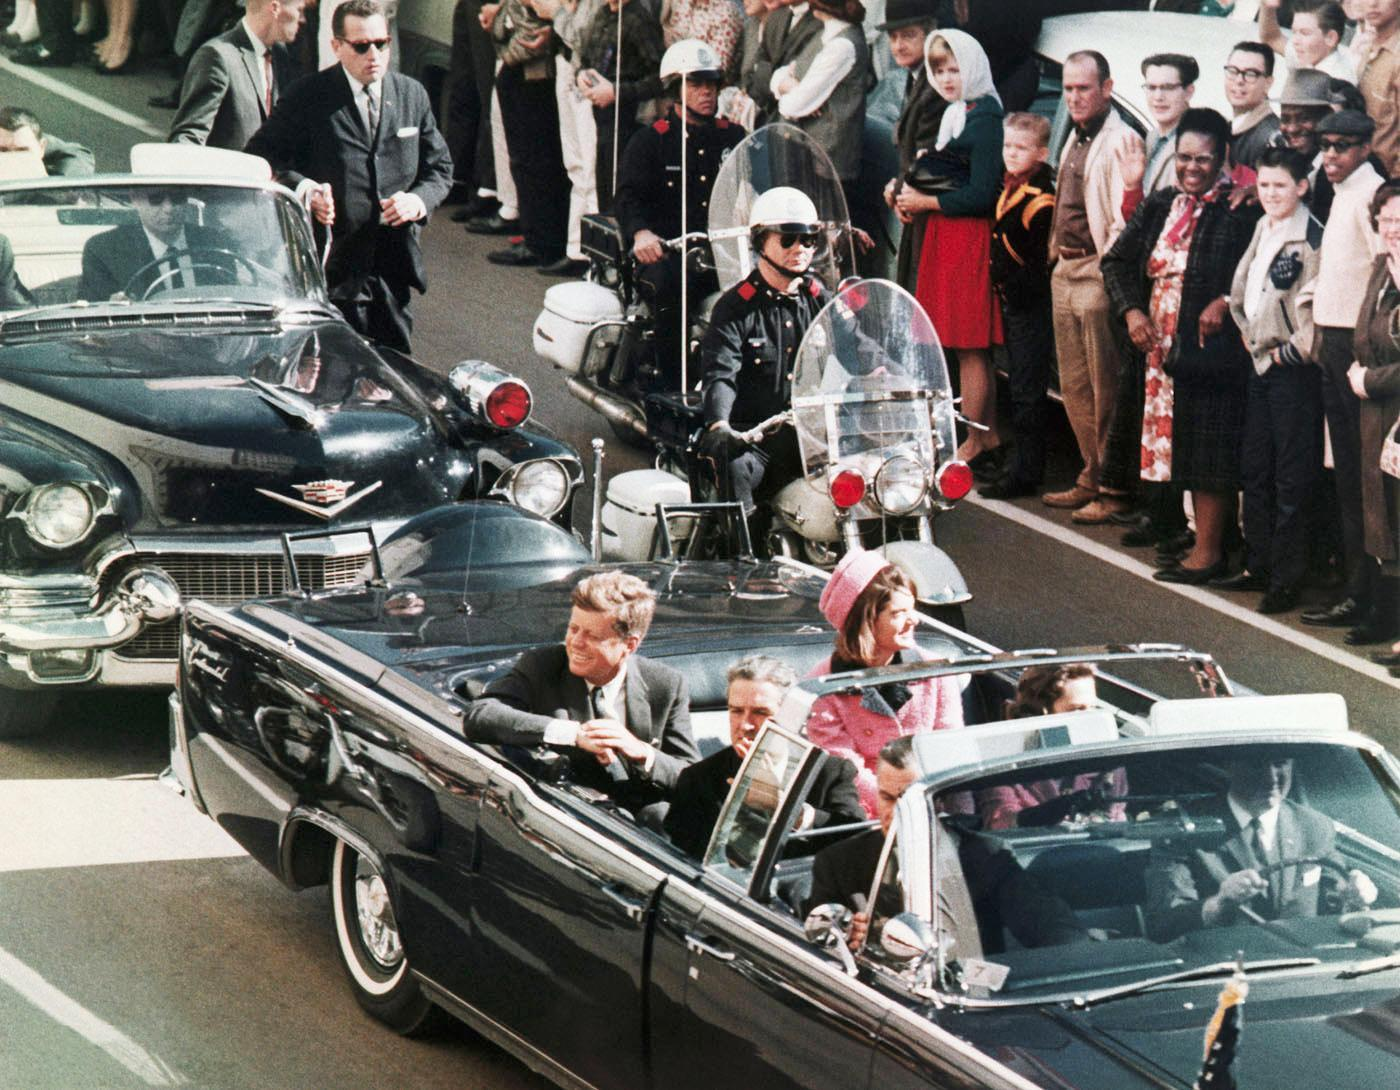 During the ambush that killed Kennedy, who else riding in the motorcade was wounded?